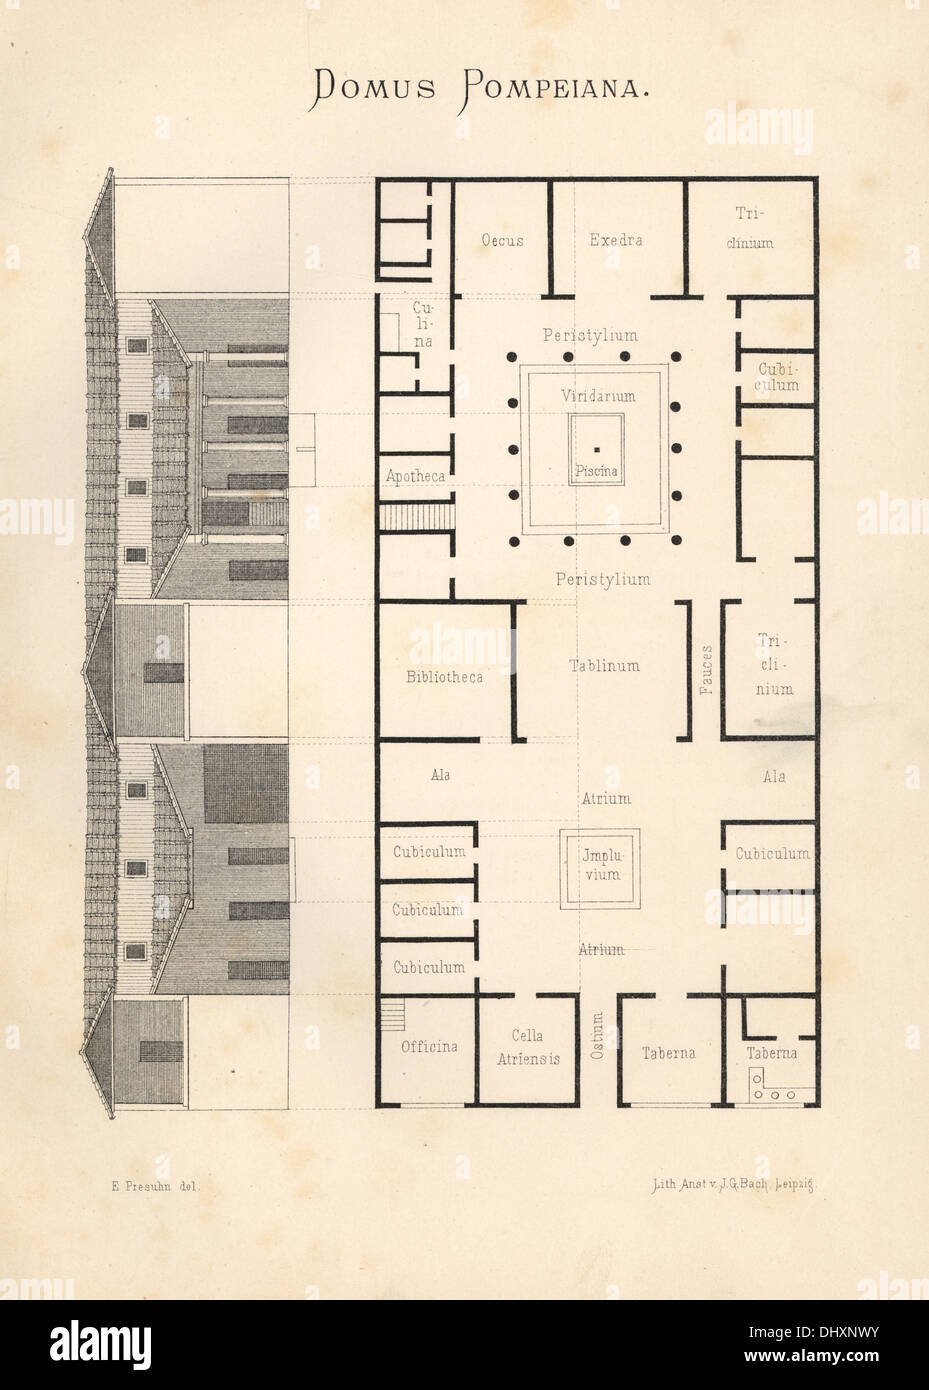 Elevation Floor Plan House : Domus pompeiana floor plan and elevation of a luxurious